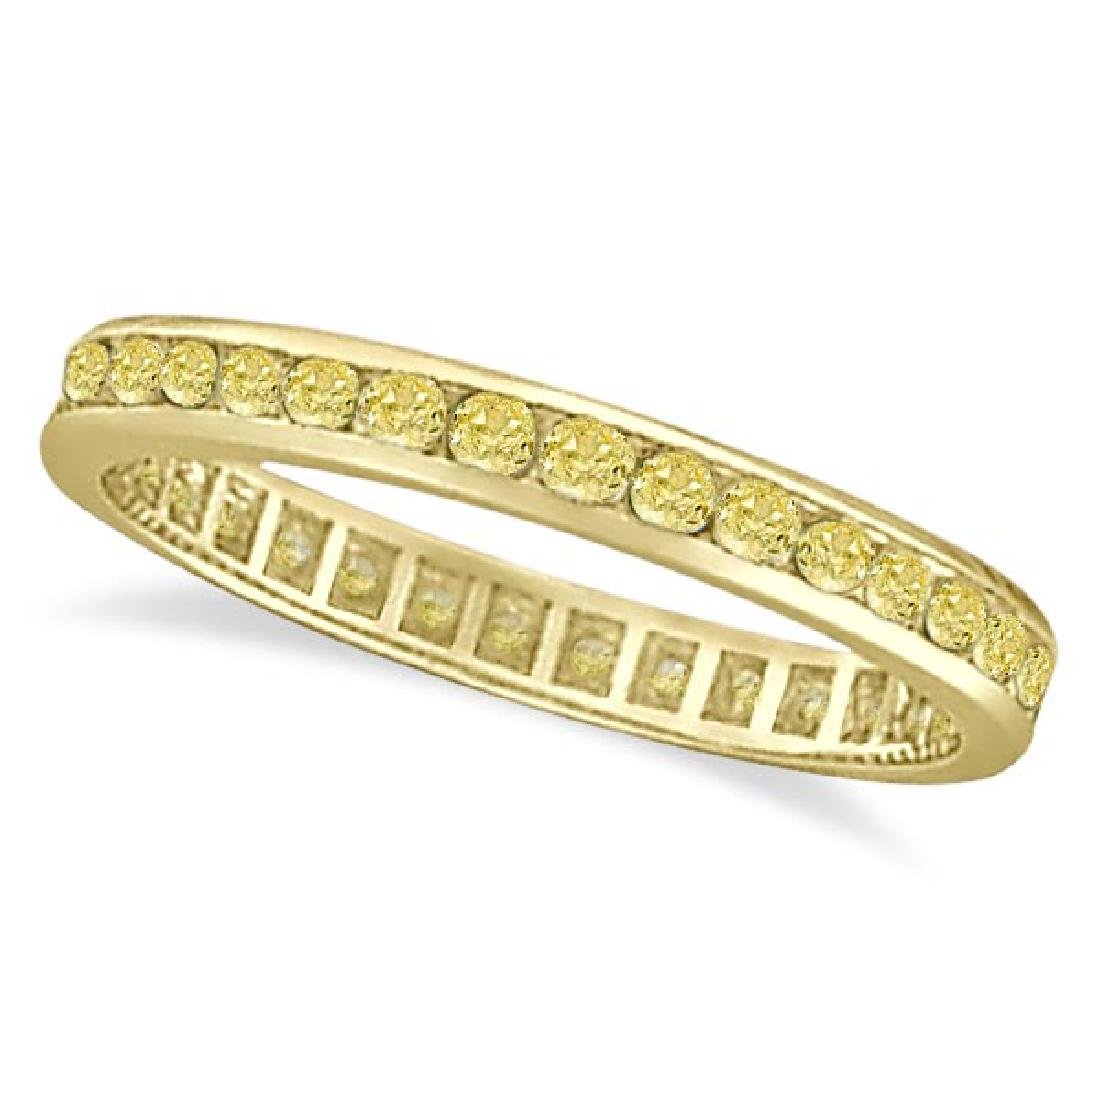 Channel Set Yellow Canary Diamond Eternity Ring 14k Yel